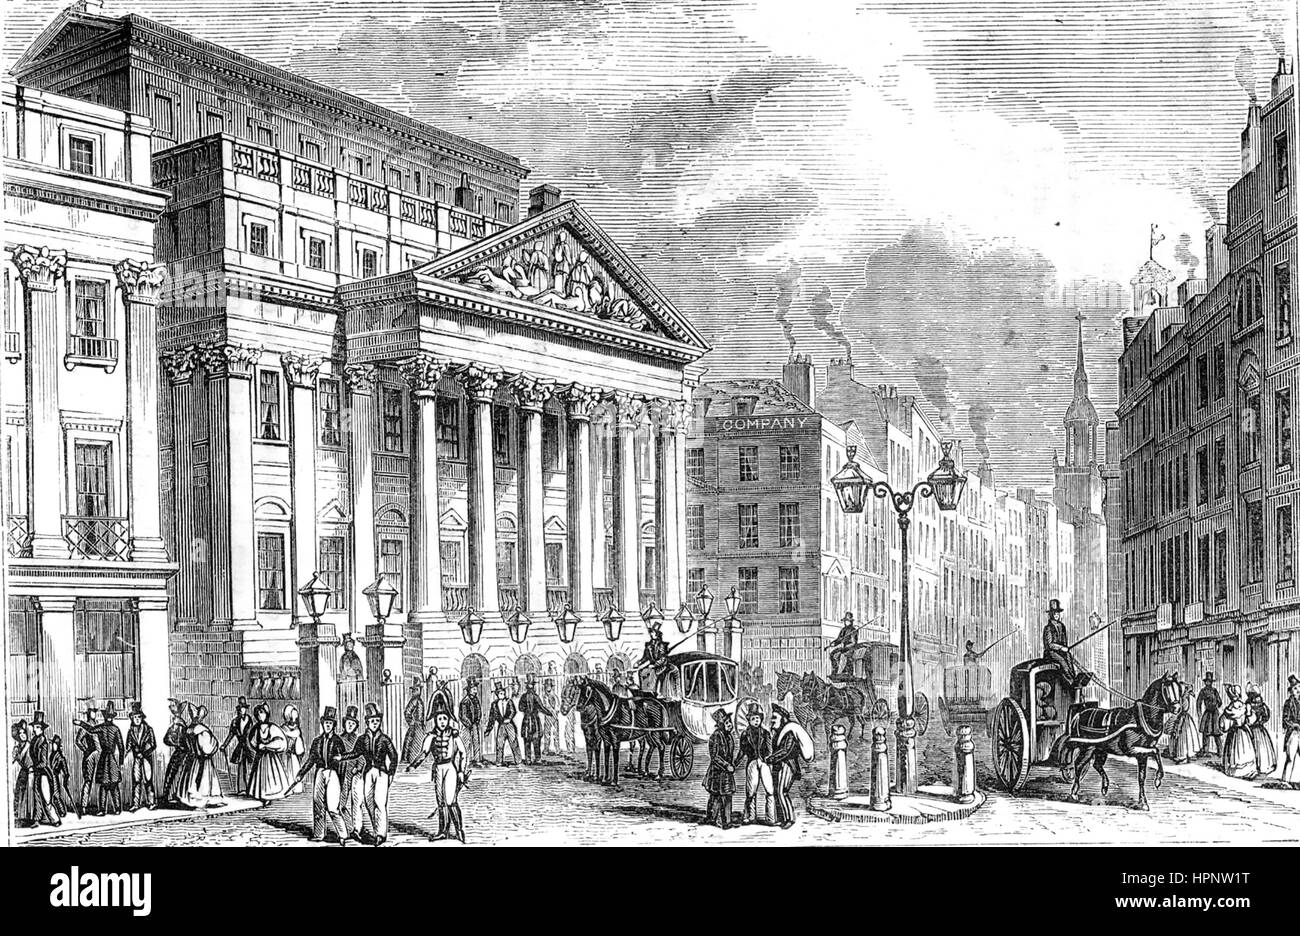 MANSION HOUSE, London, about 1820 - Stock Image